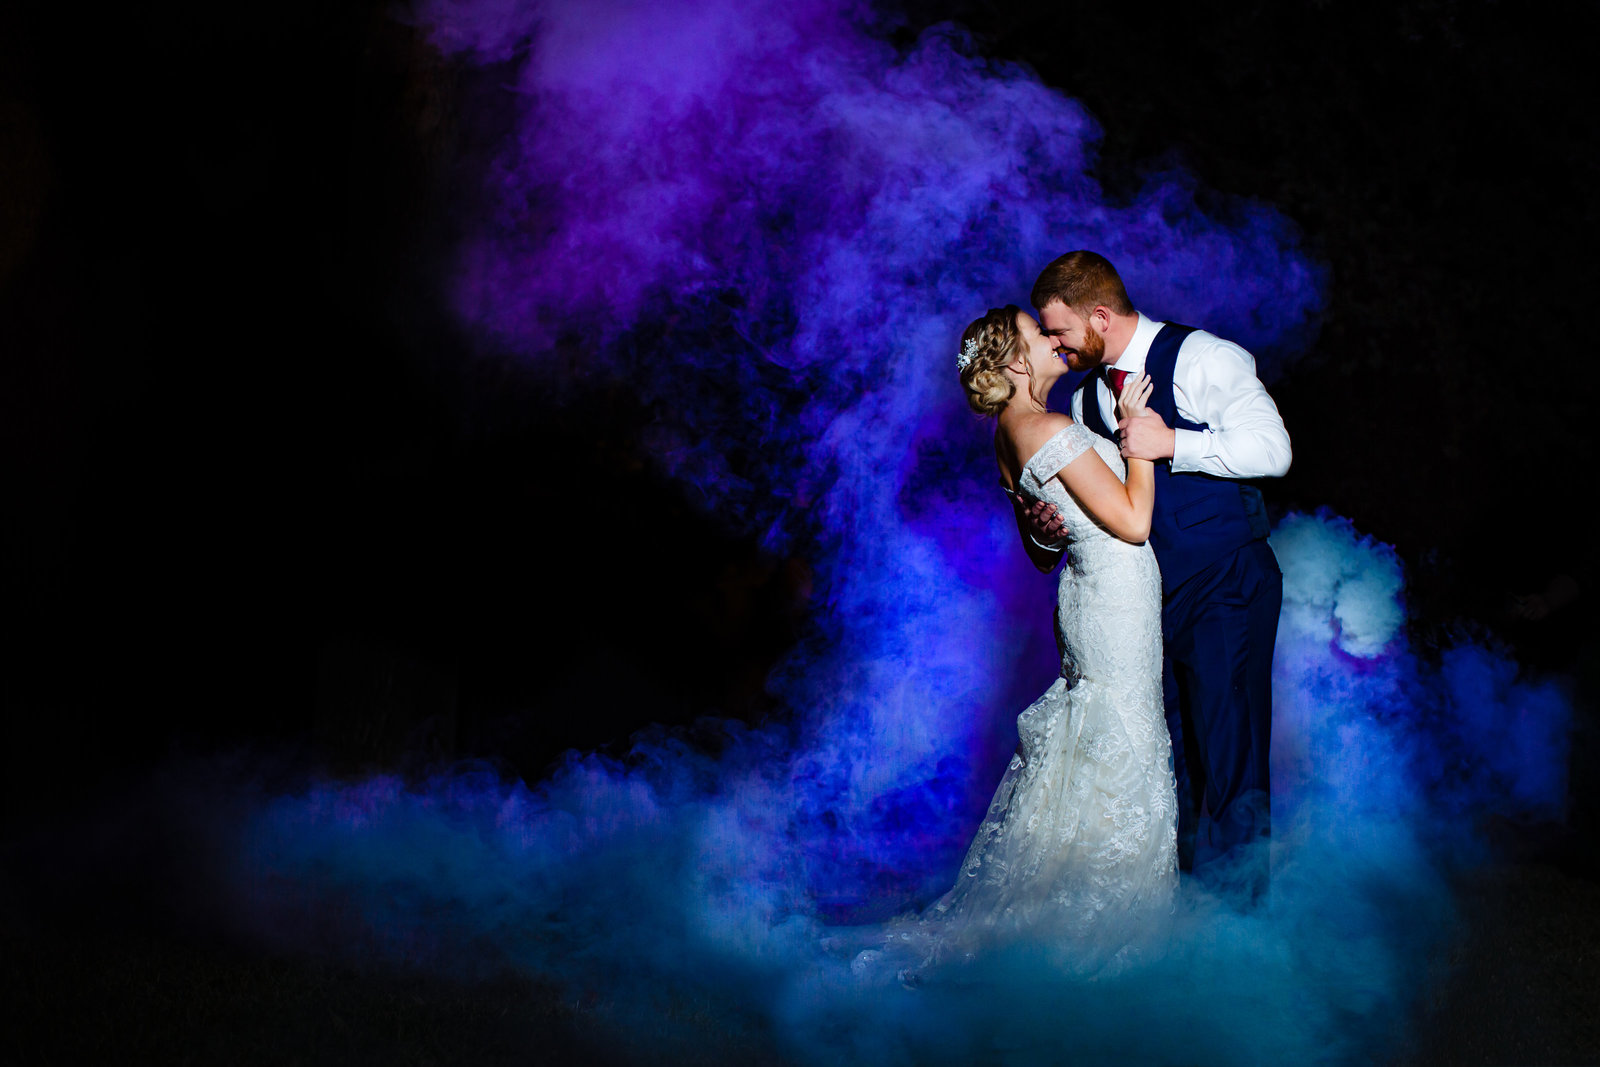 Smoke Bomb Bride and Groom Portrait in San Antonio